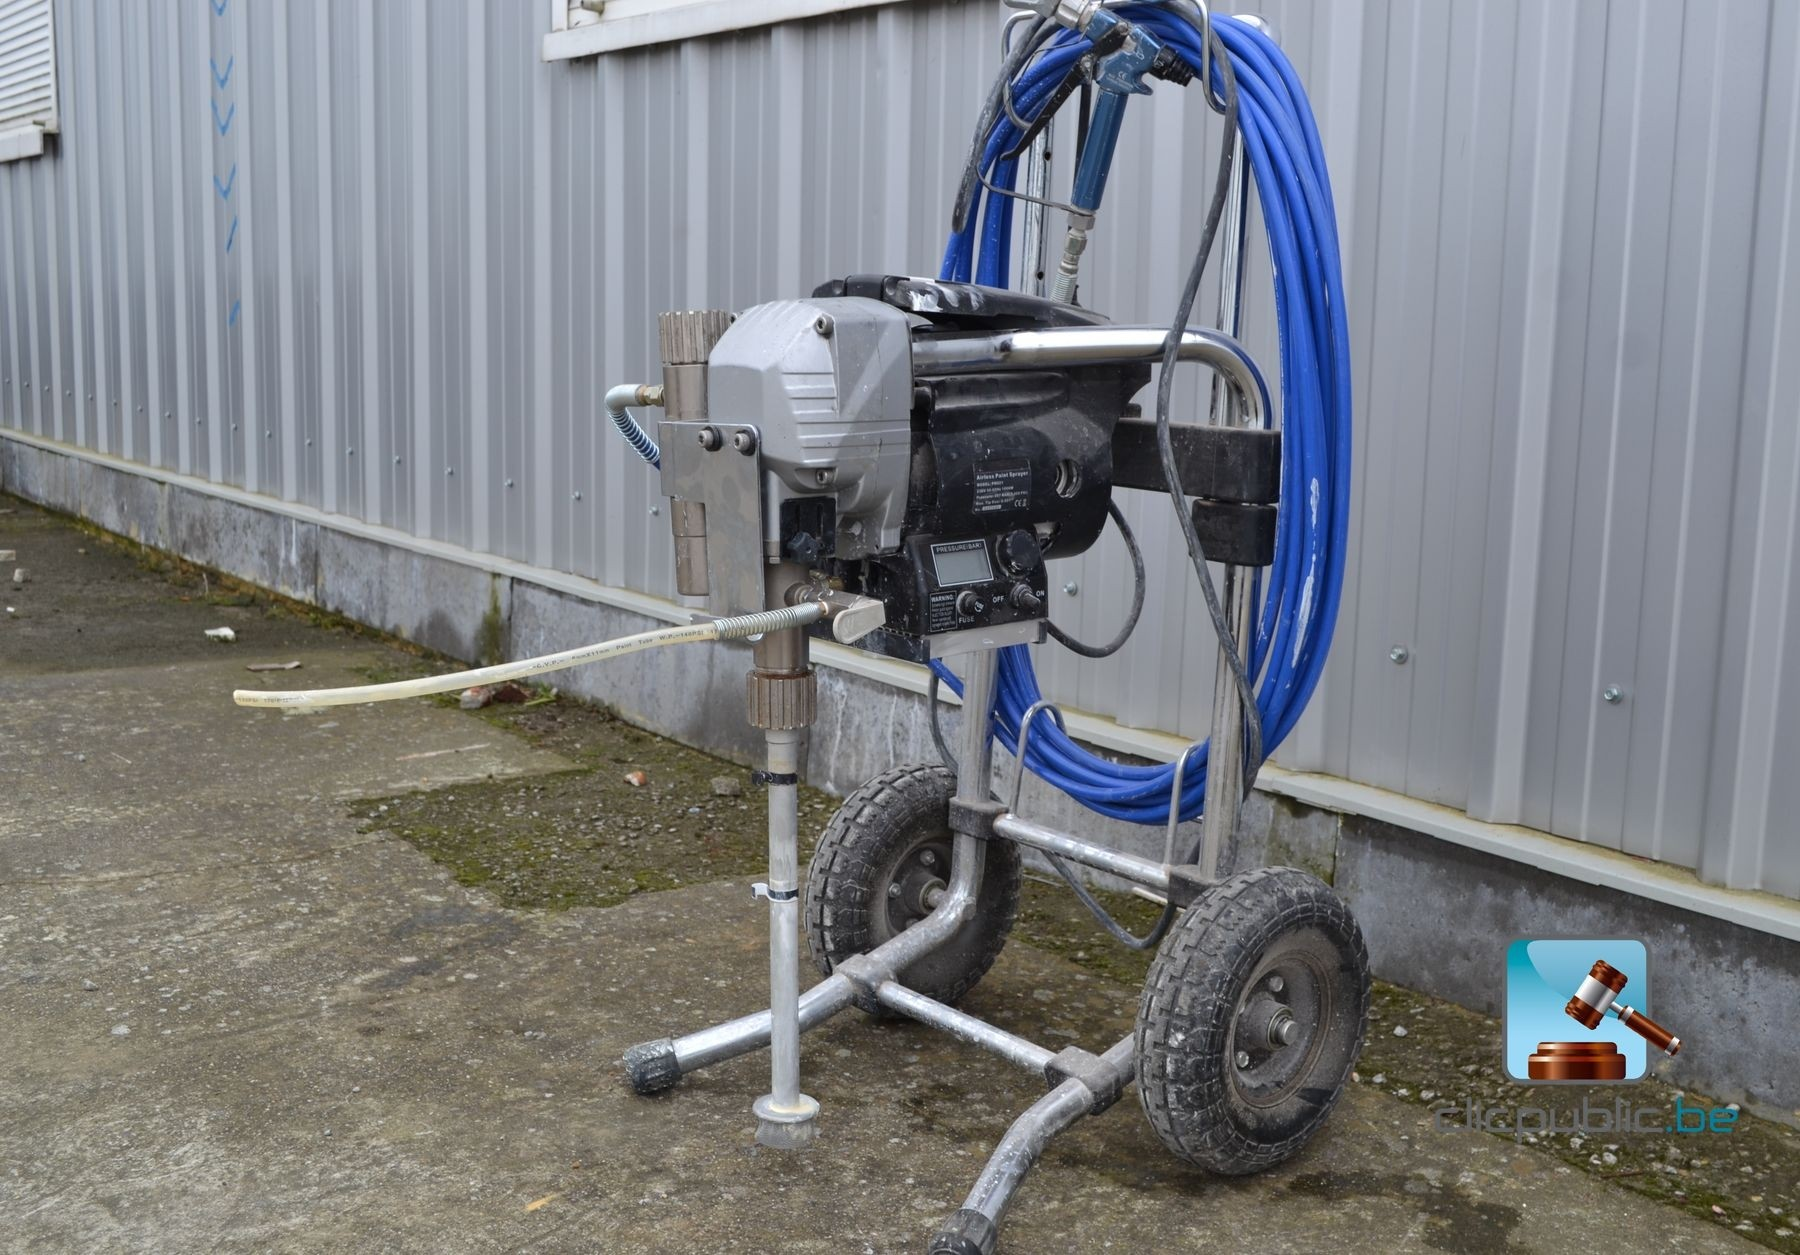 Paint Spraying Machine Airless Paint Spray Pm021 Ref 25 For Sale On